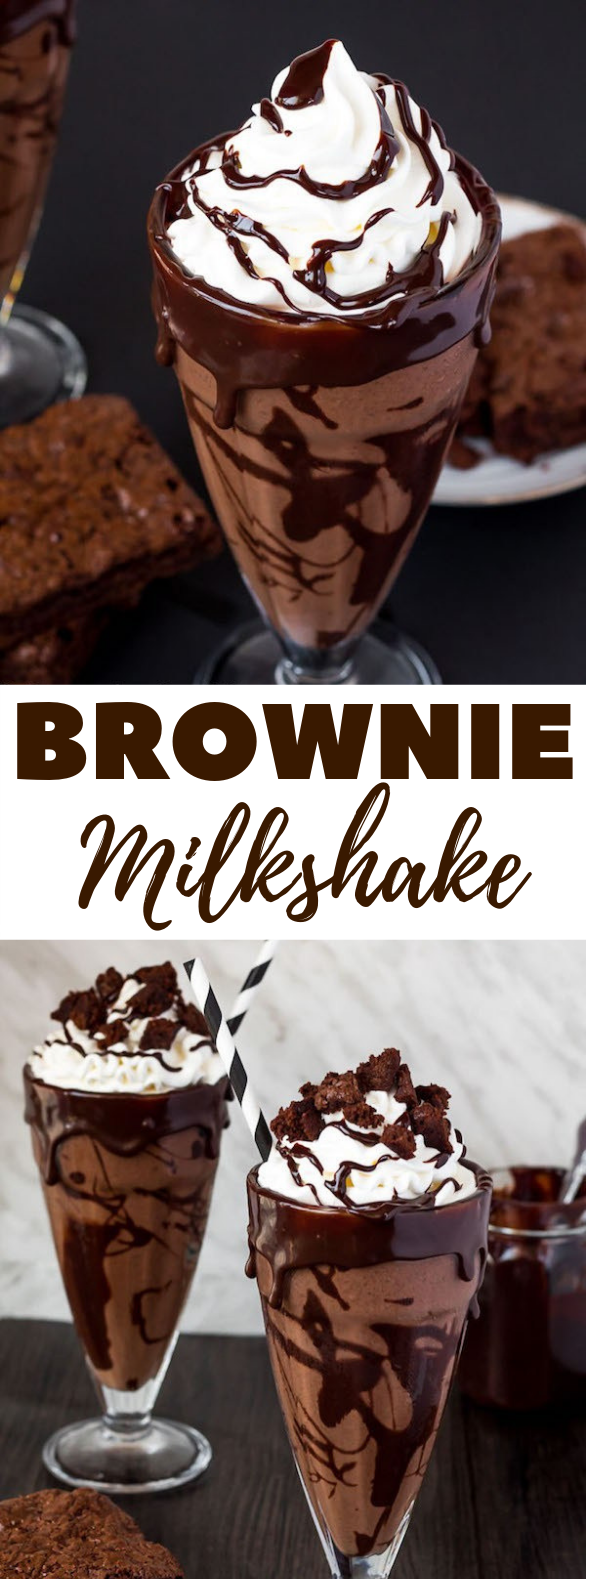 BROWNIE MILKSHAKE #milk #drinks